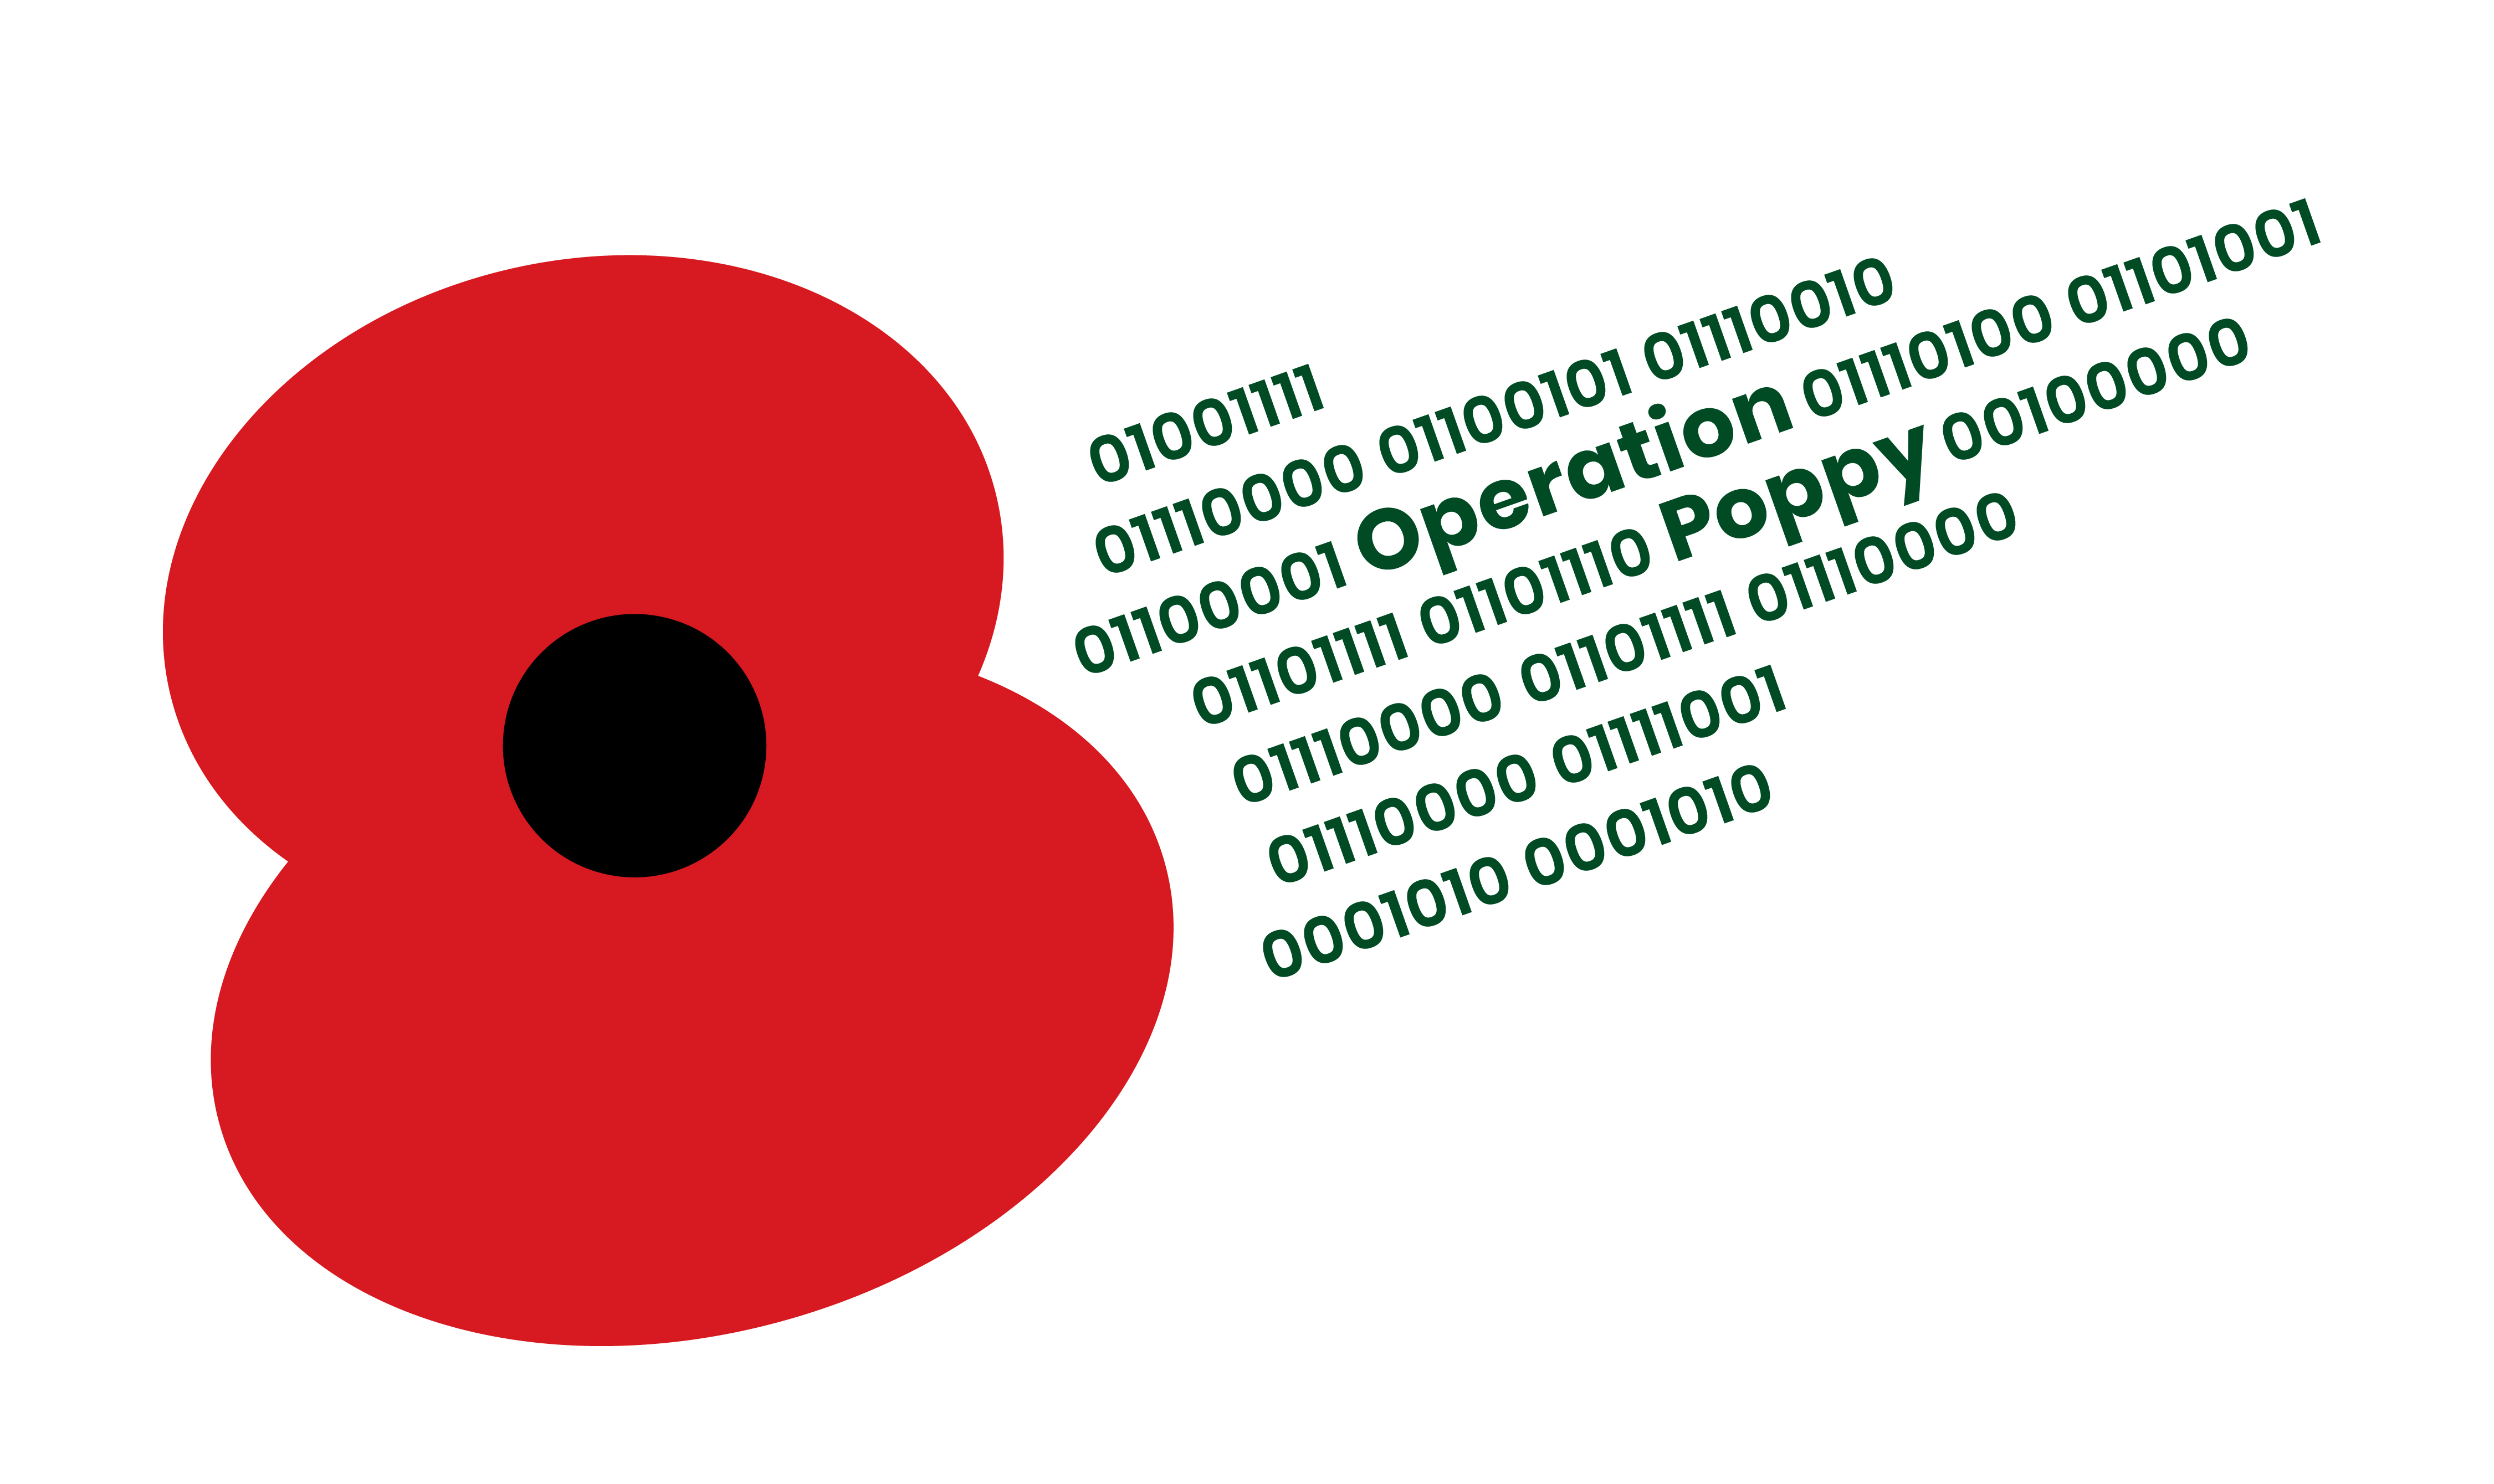 GCHQ supports The Royal British Legion\'s 2019 Poppy Appeal.